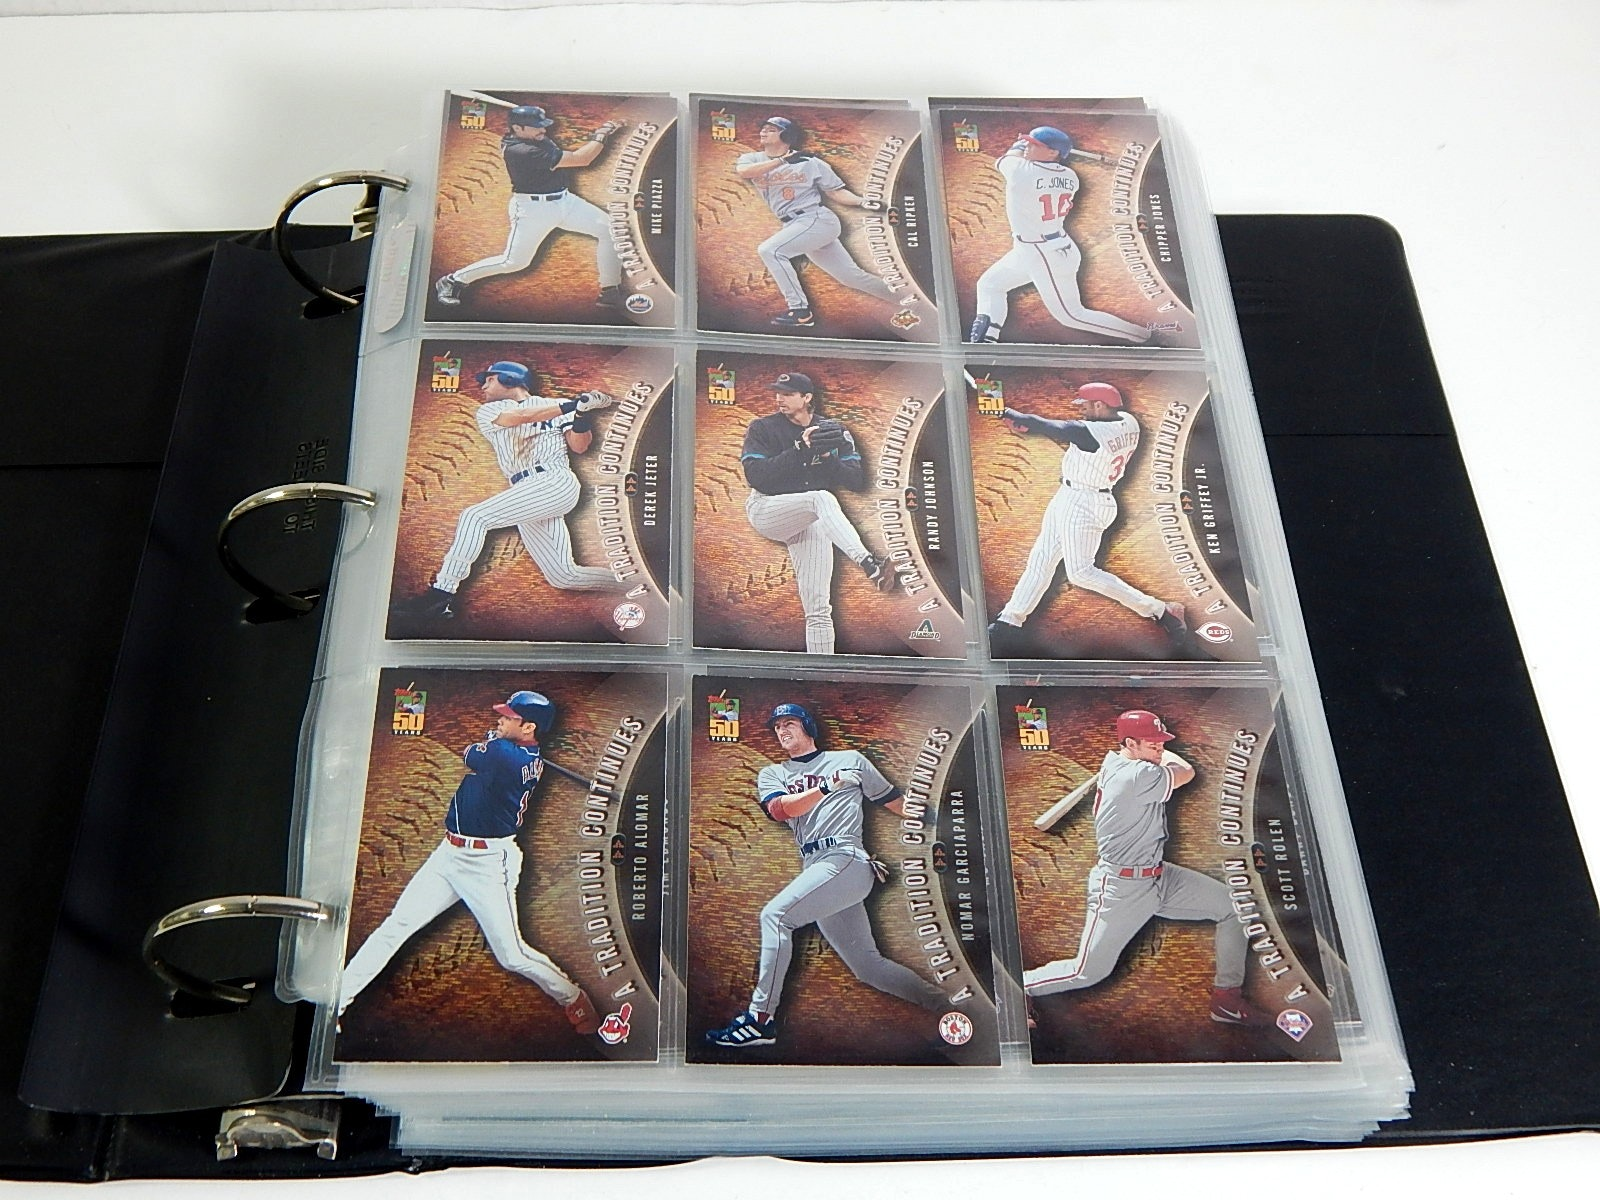 Album with Baseball Sets from 2000s